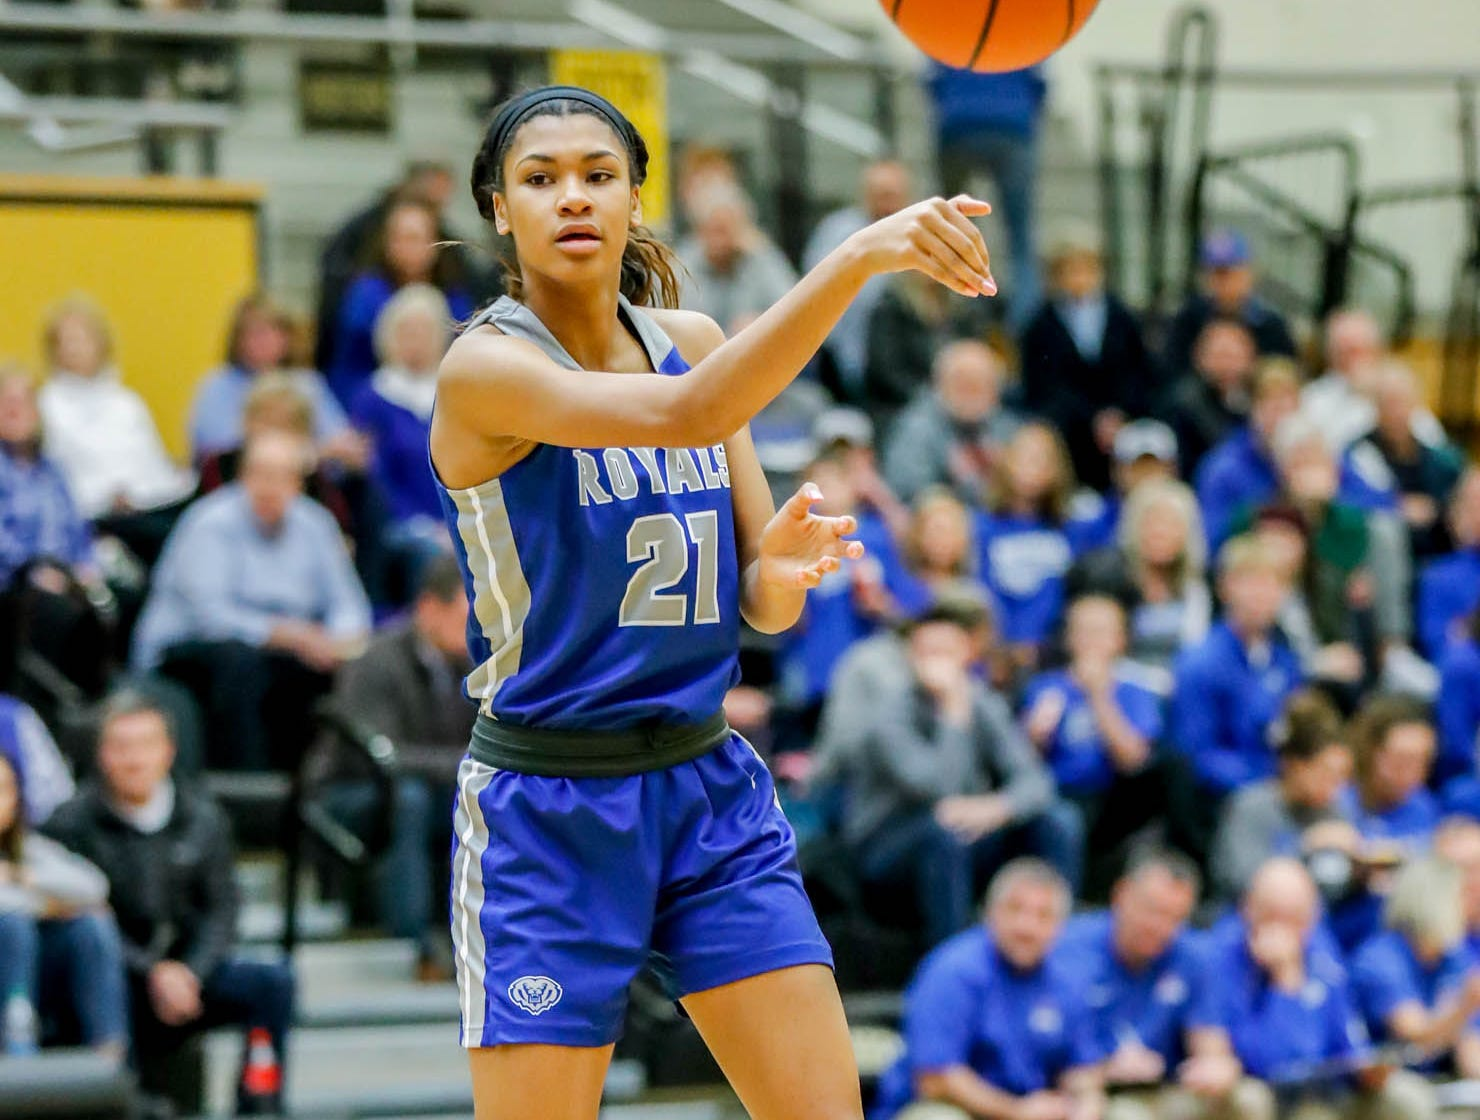 Hamilton South Eastern's Tayah Irvin (21), passes the ball during a game between Hamilton Southeastern High School and Warren Central High School, held at Warren on Thursday, Jan. 3, 2019.